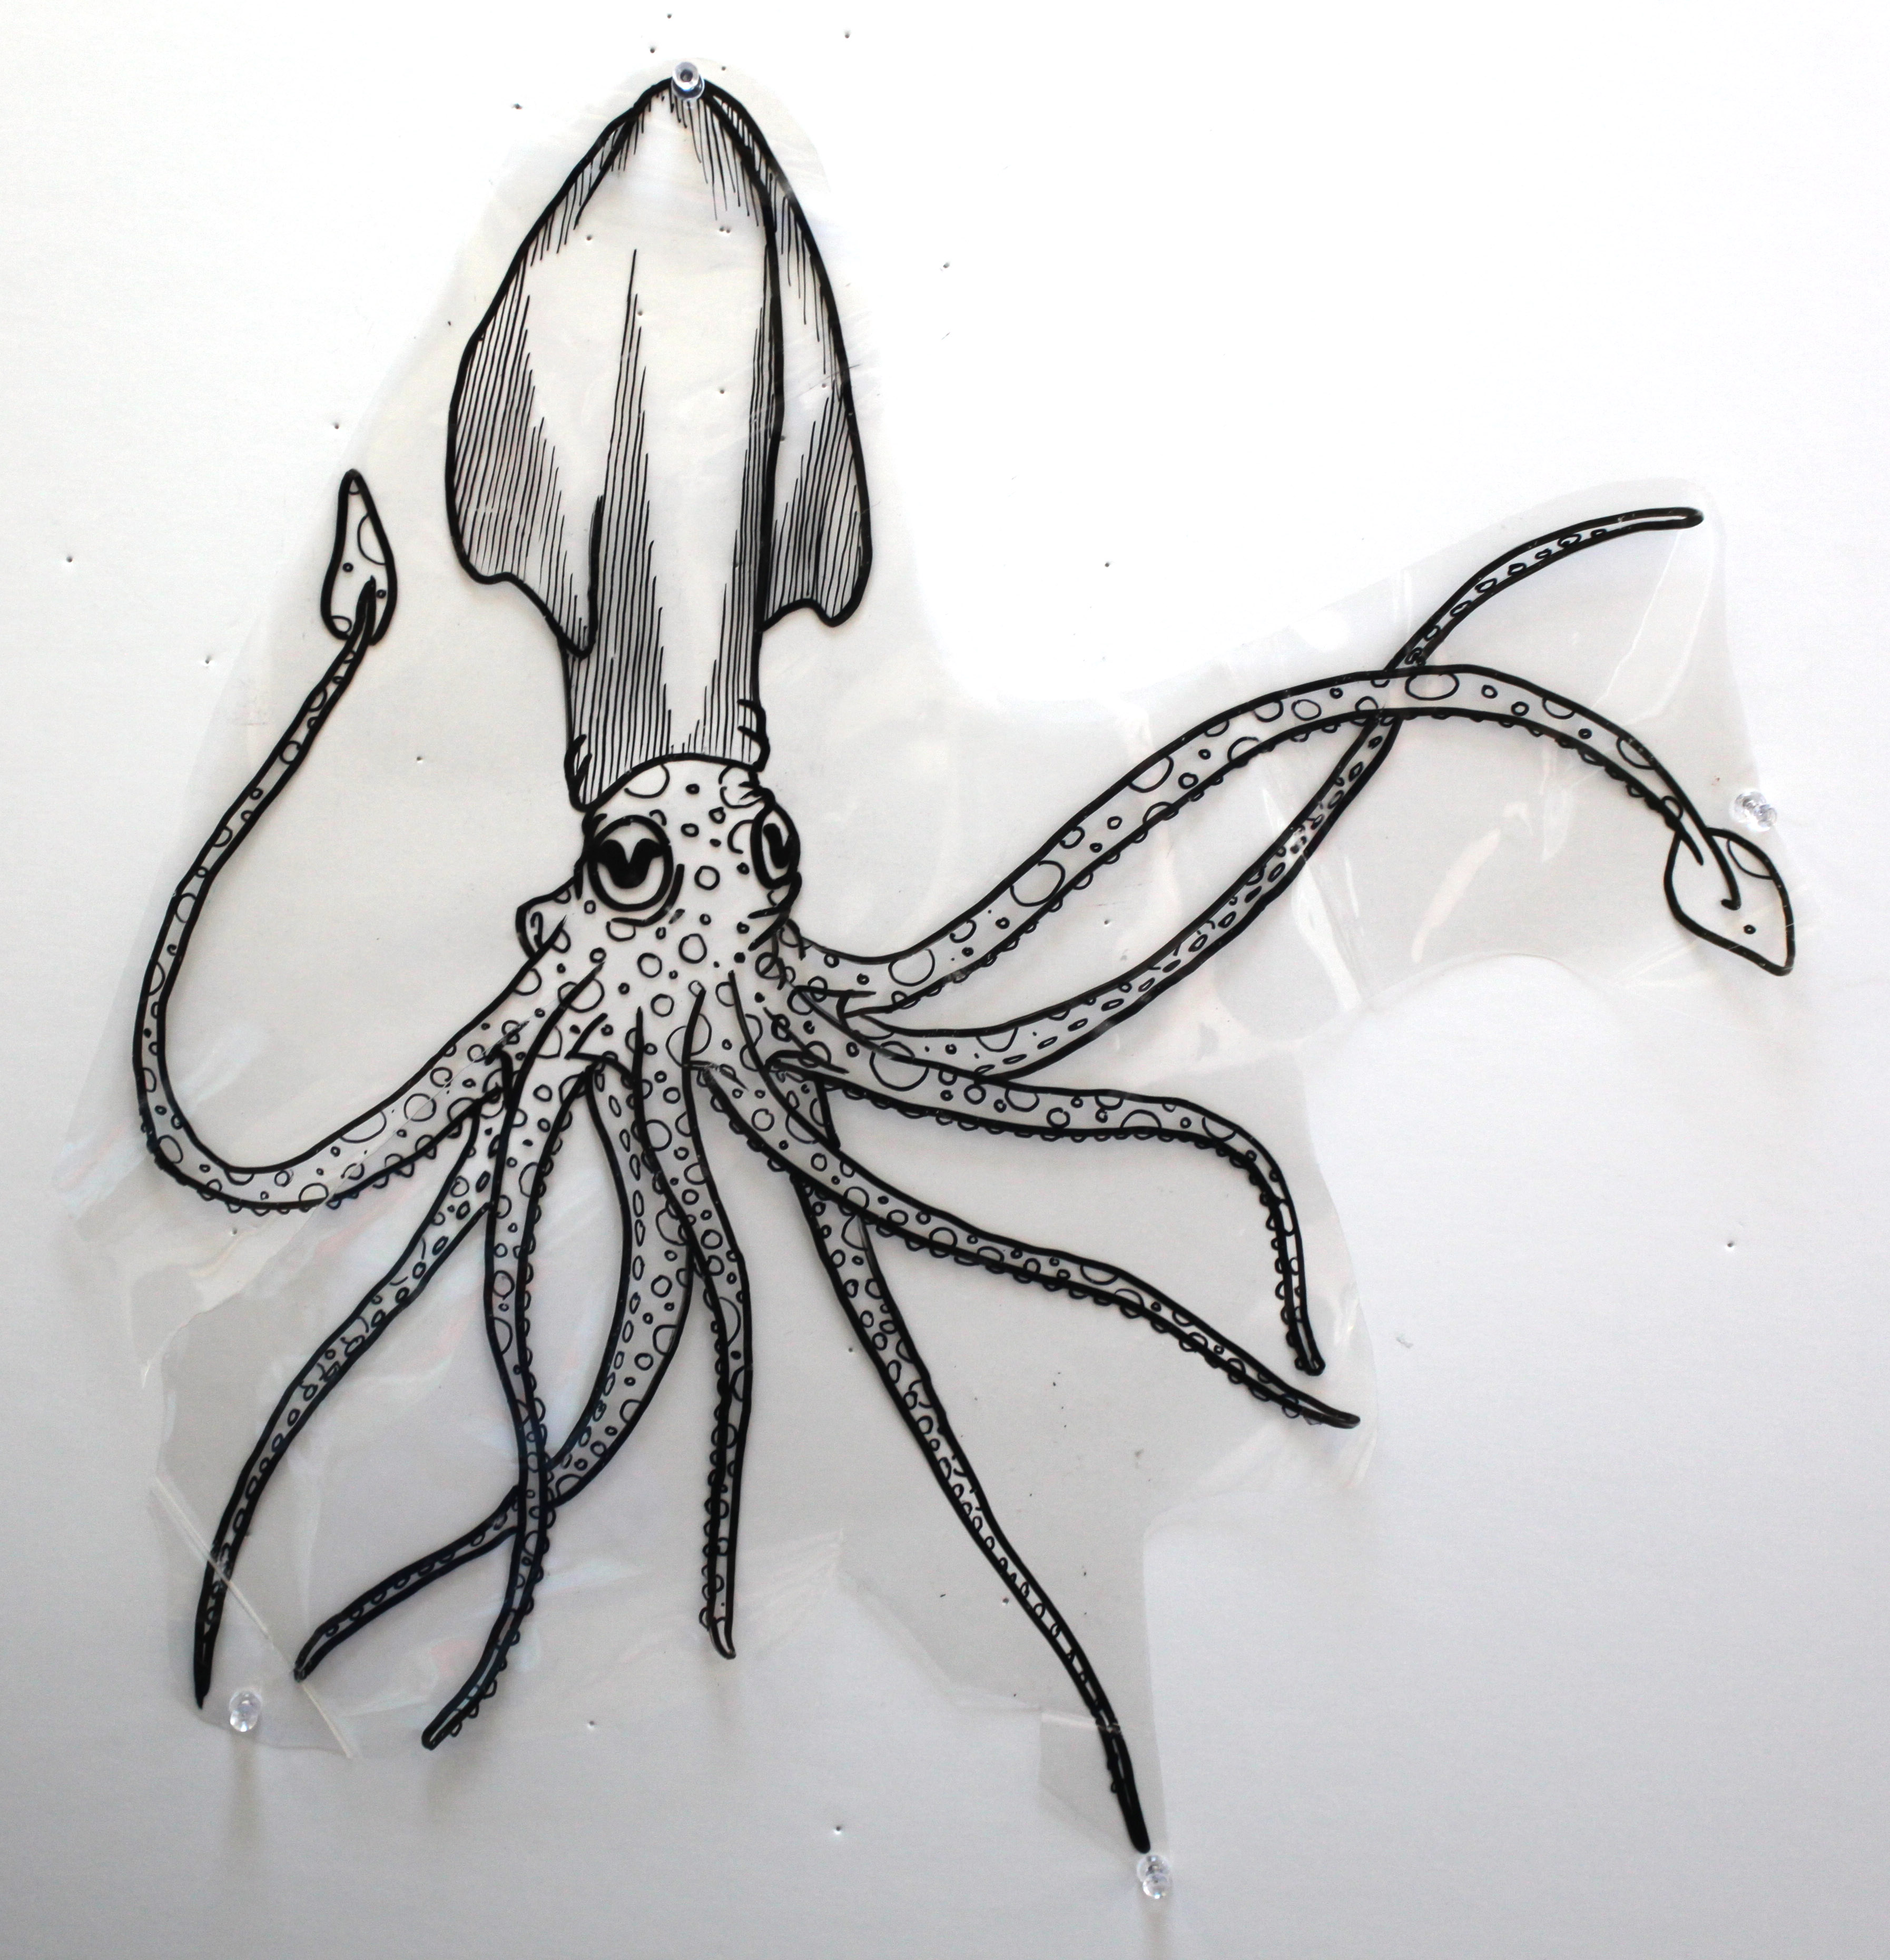 Giant Octopus Drawings Octopus